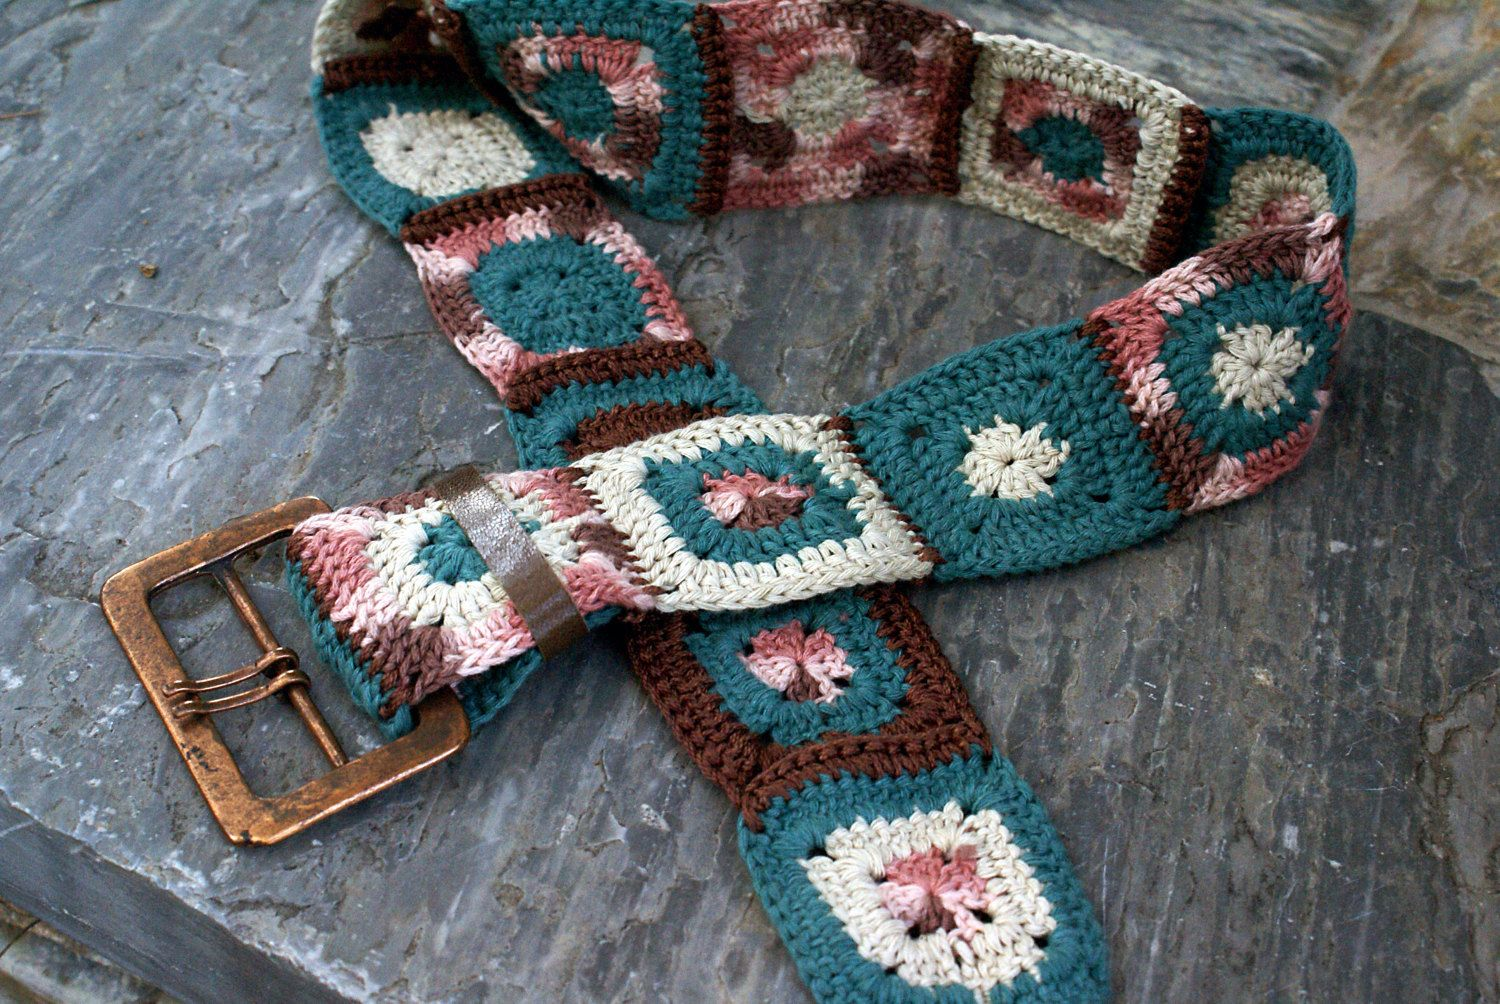 Vintage crochet belt with granny squares and brass belt buckle. by Hishuk on Etsy